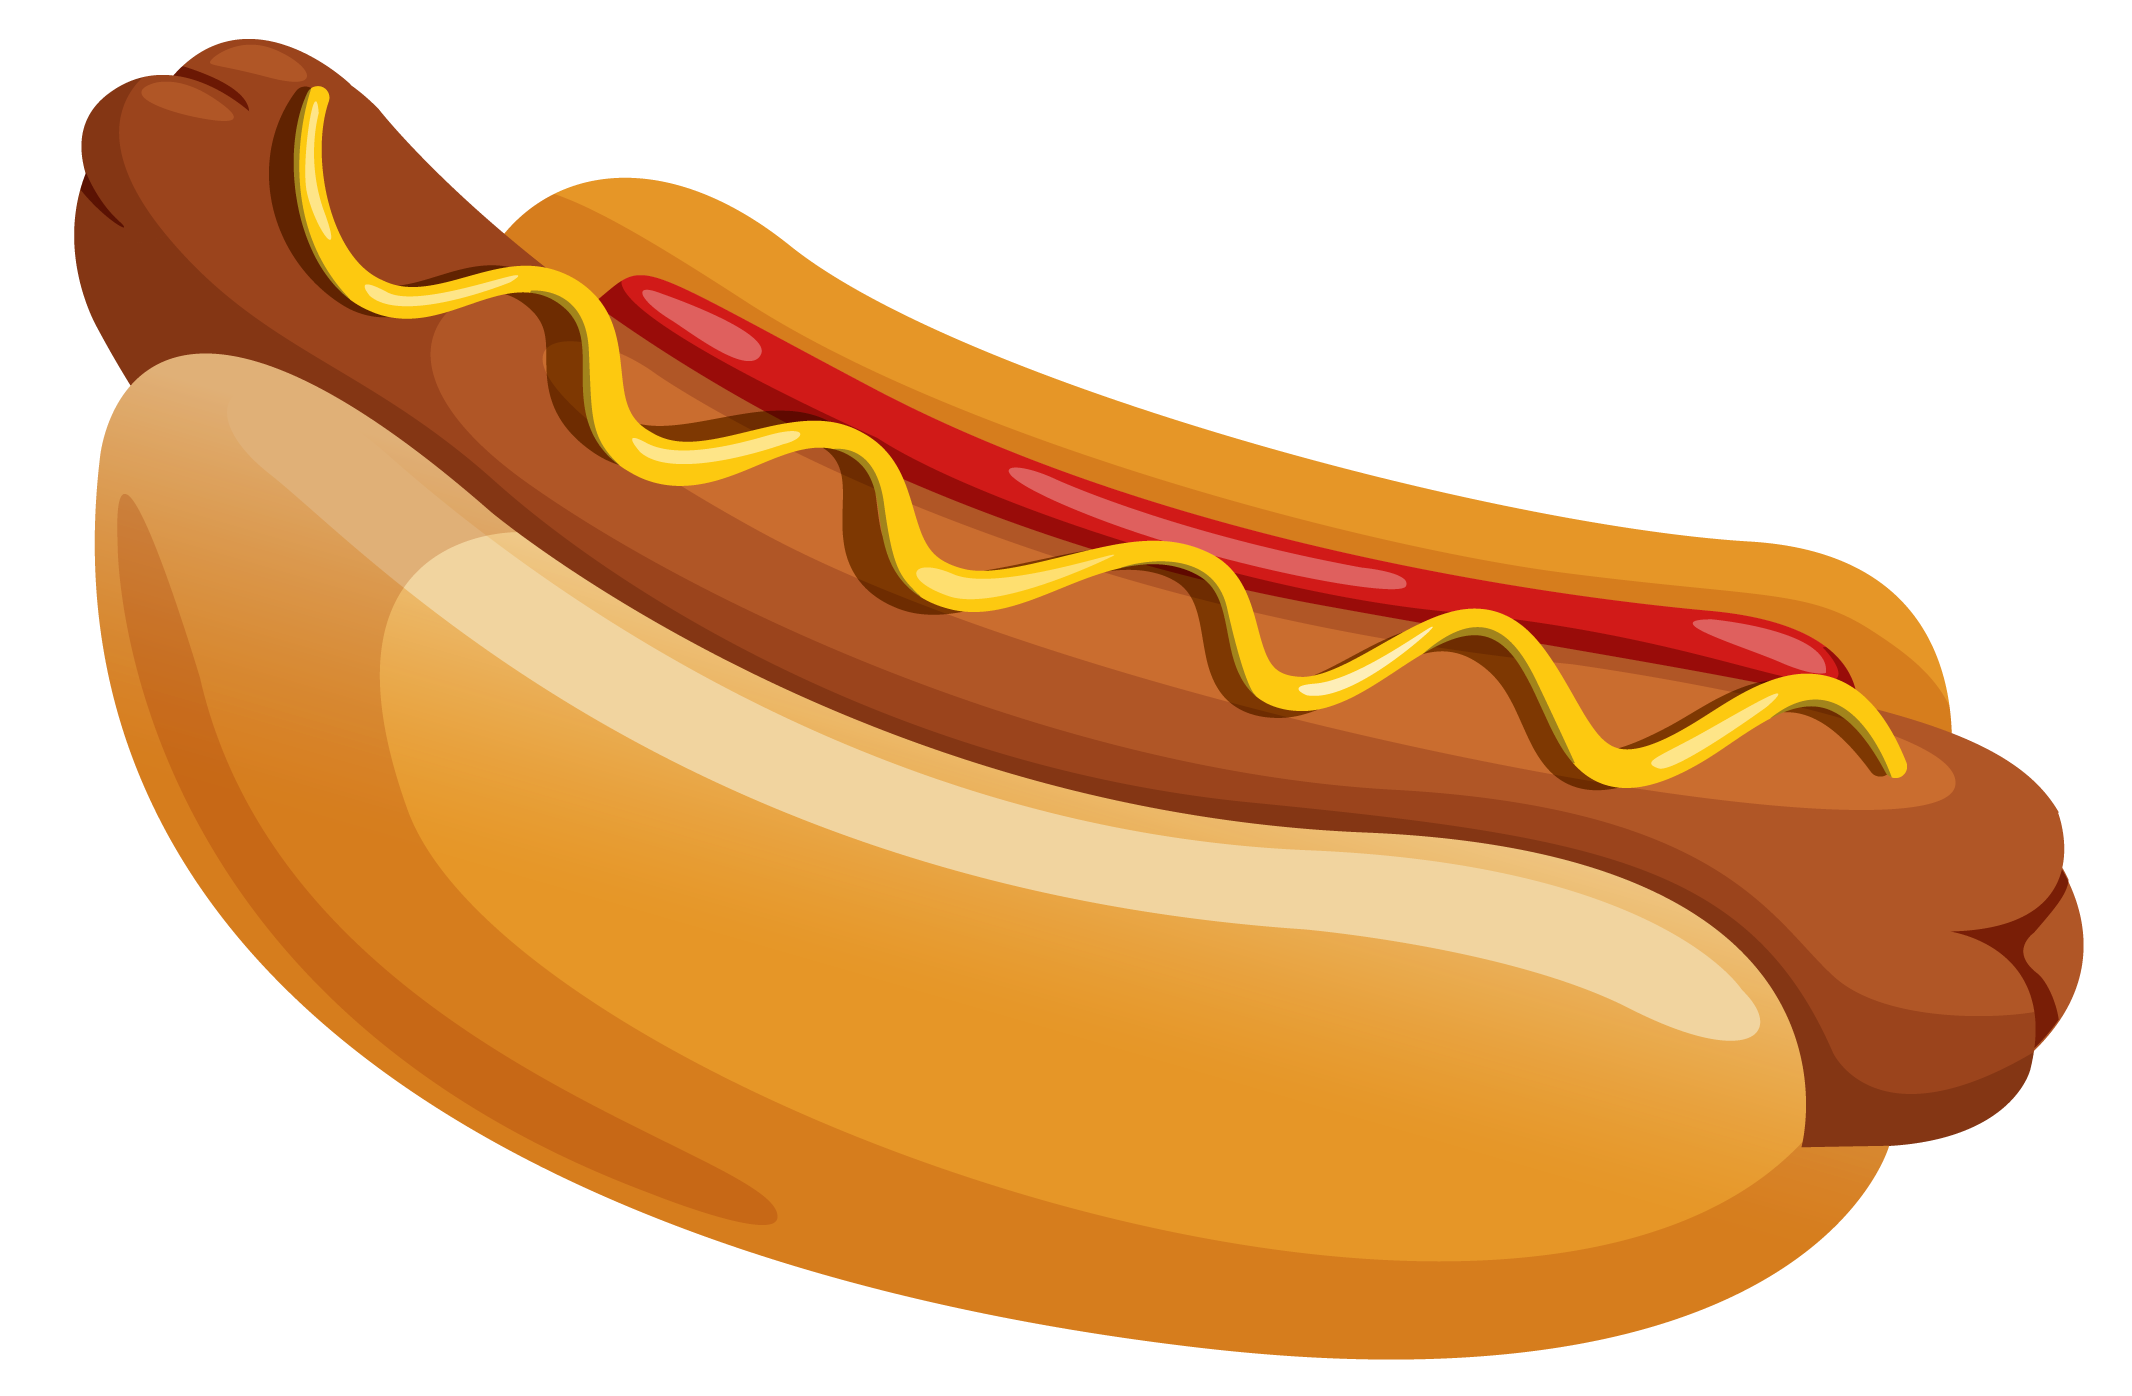 Cartoon hotdog images clipart images gallery for free.